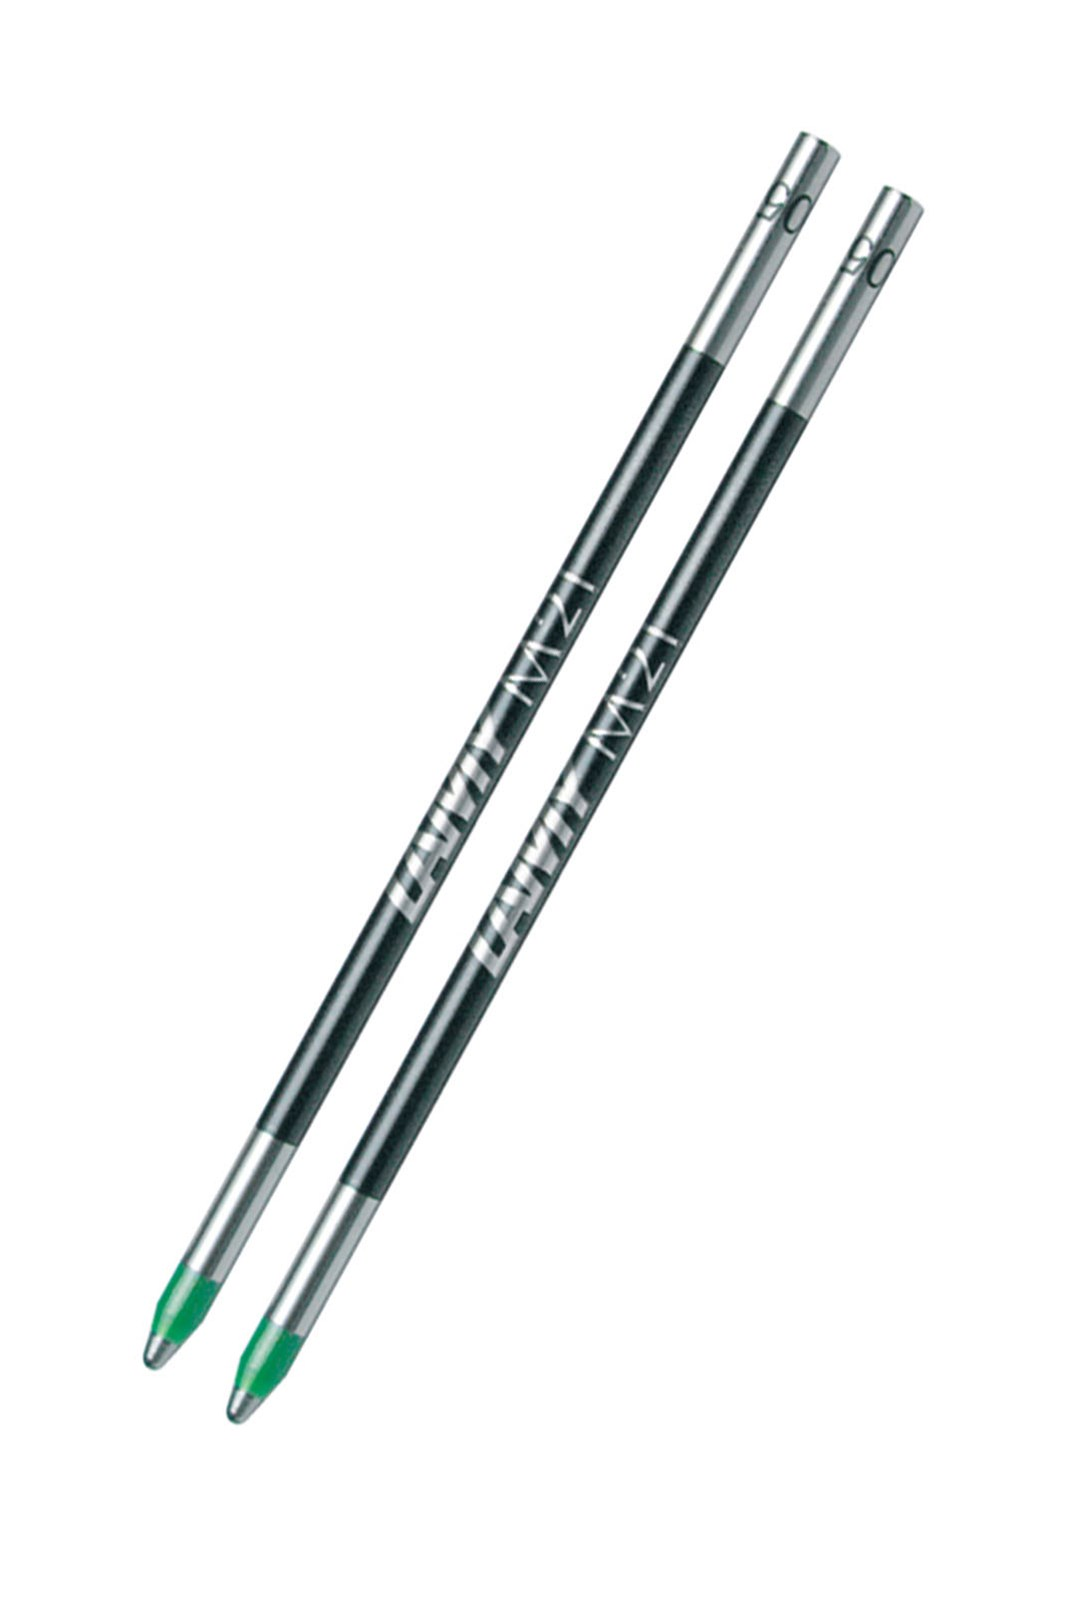 LAMY - M21 Ballpoint Pen Refill - Hangsell - Set of 2 - Green